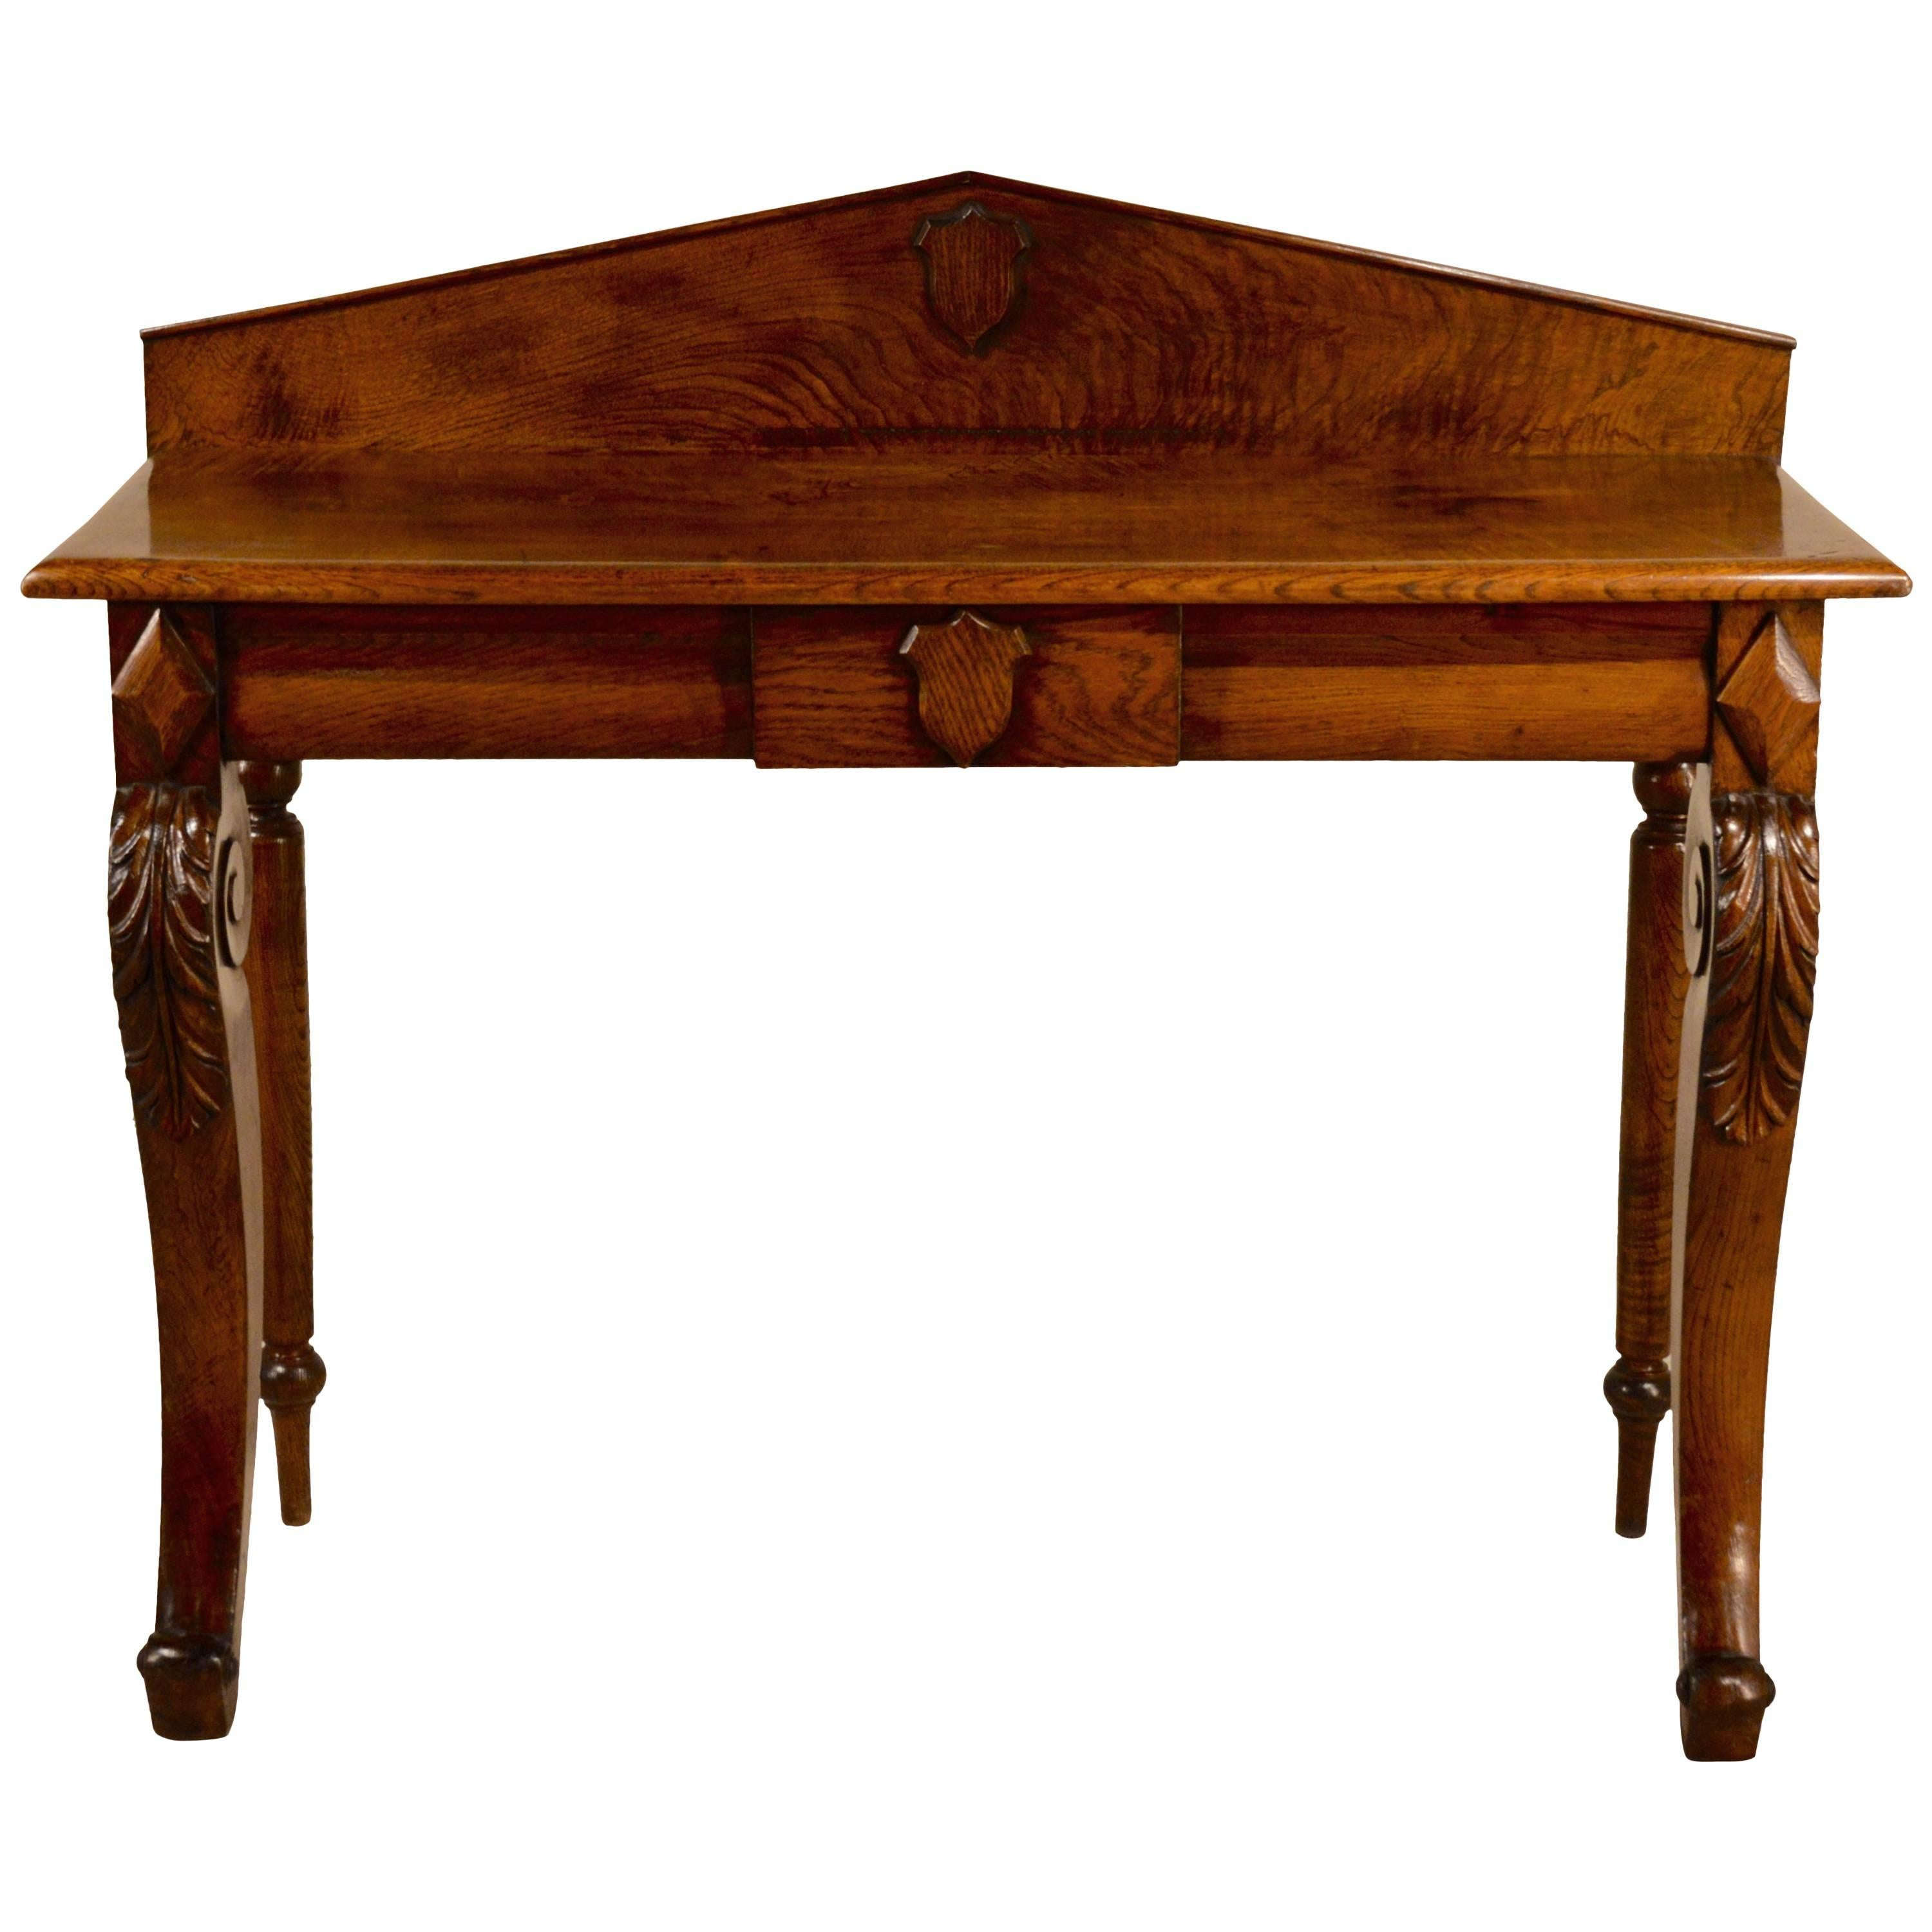 19th Century English Console Table